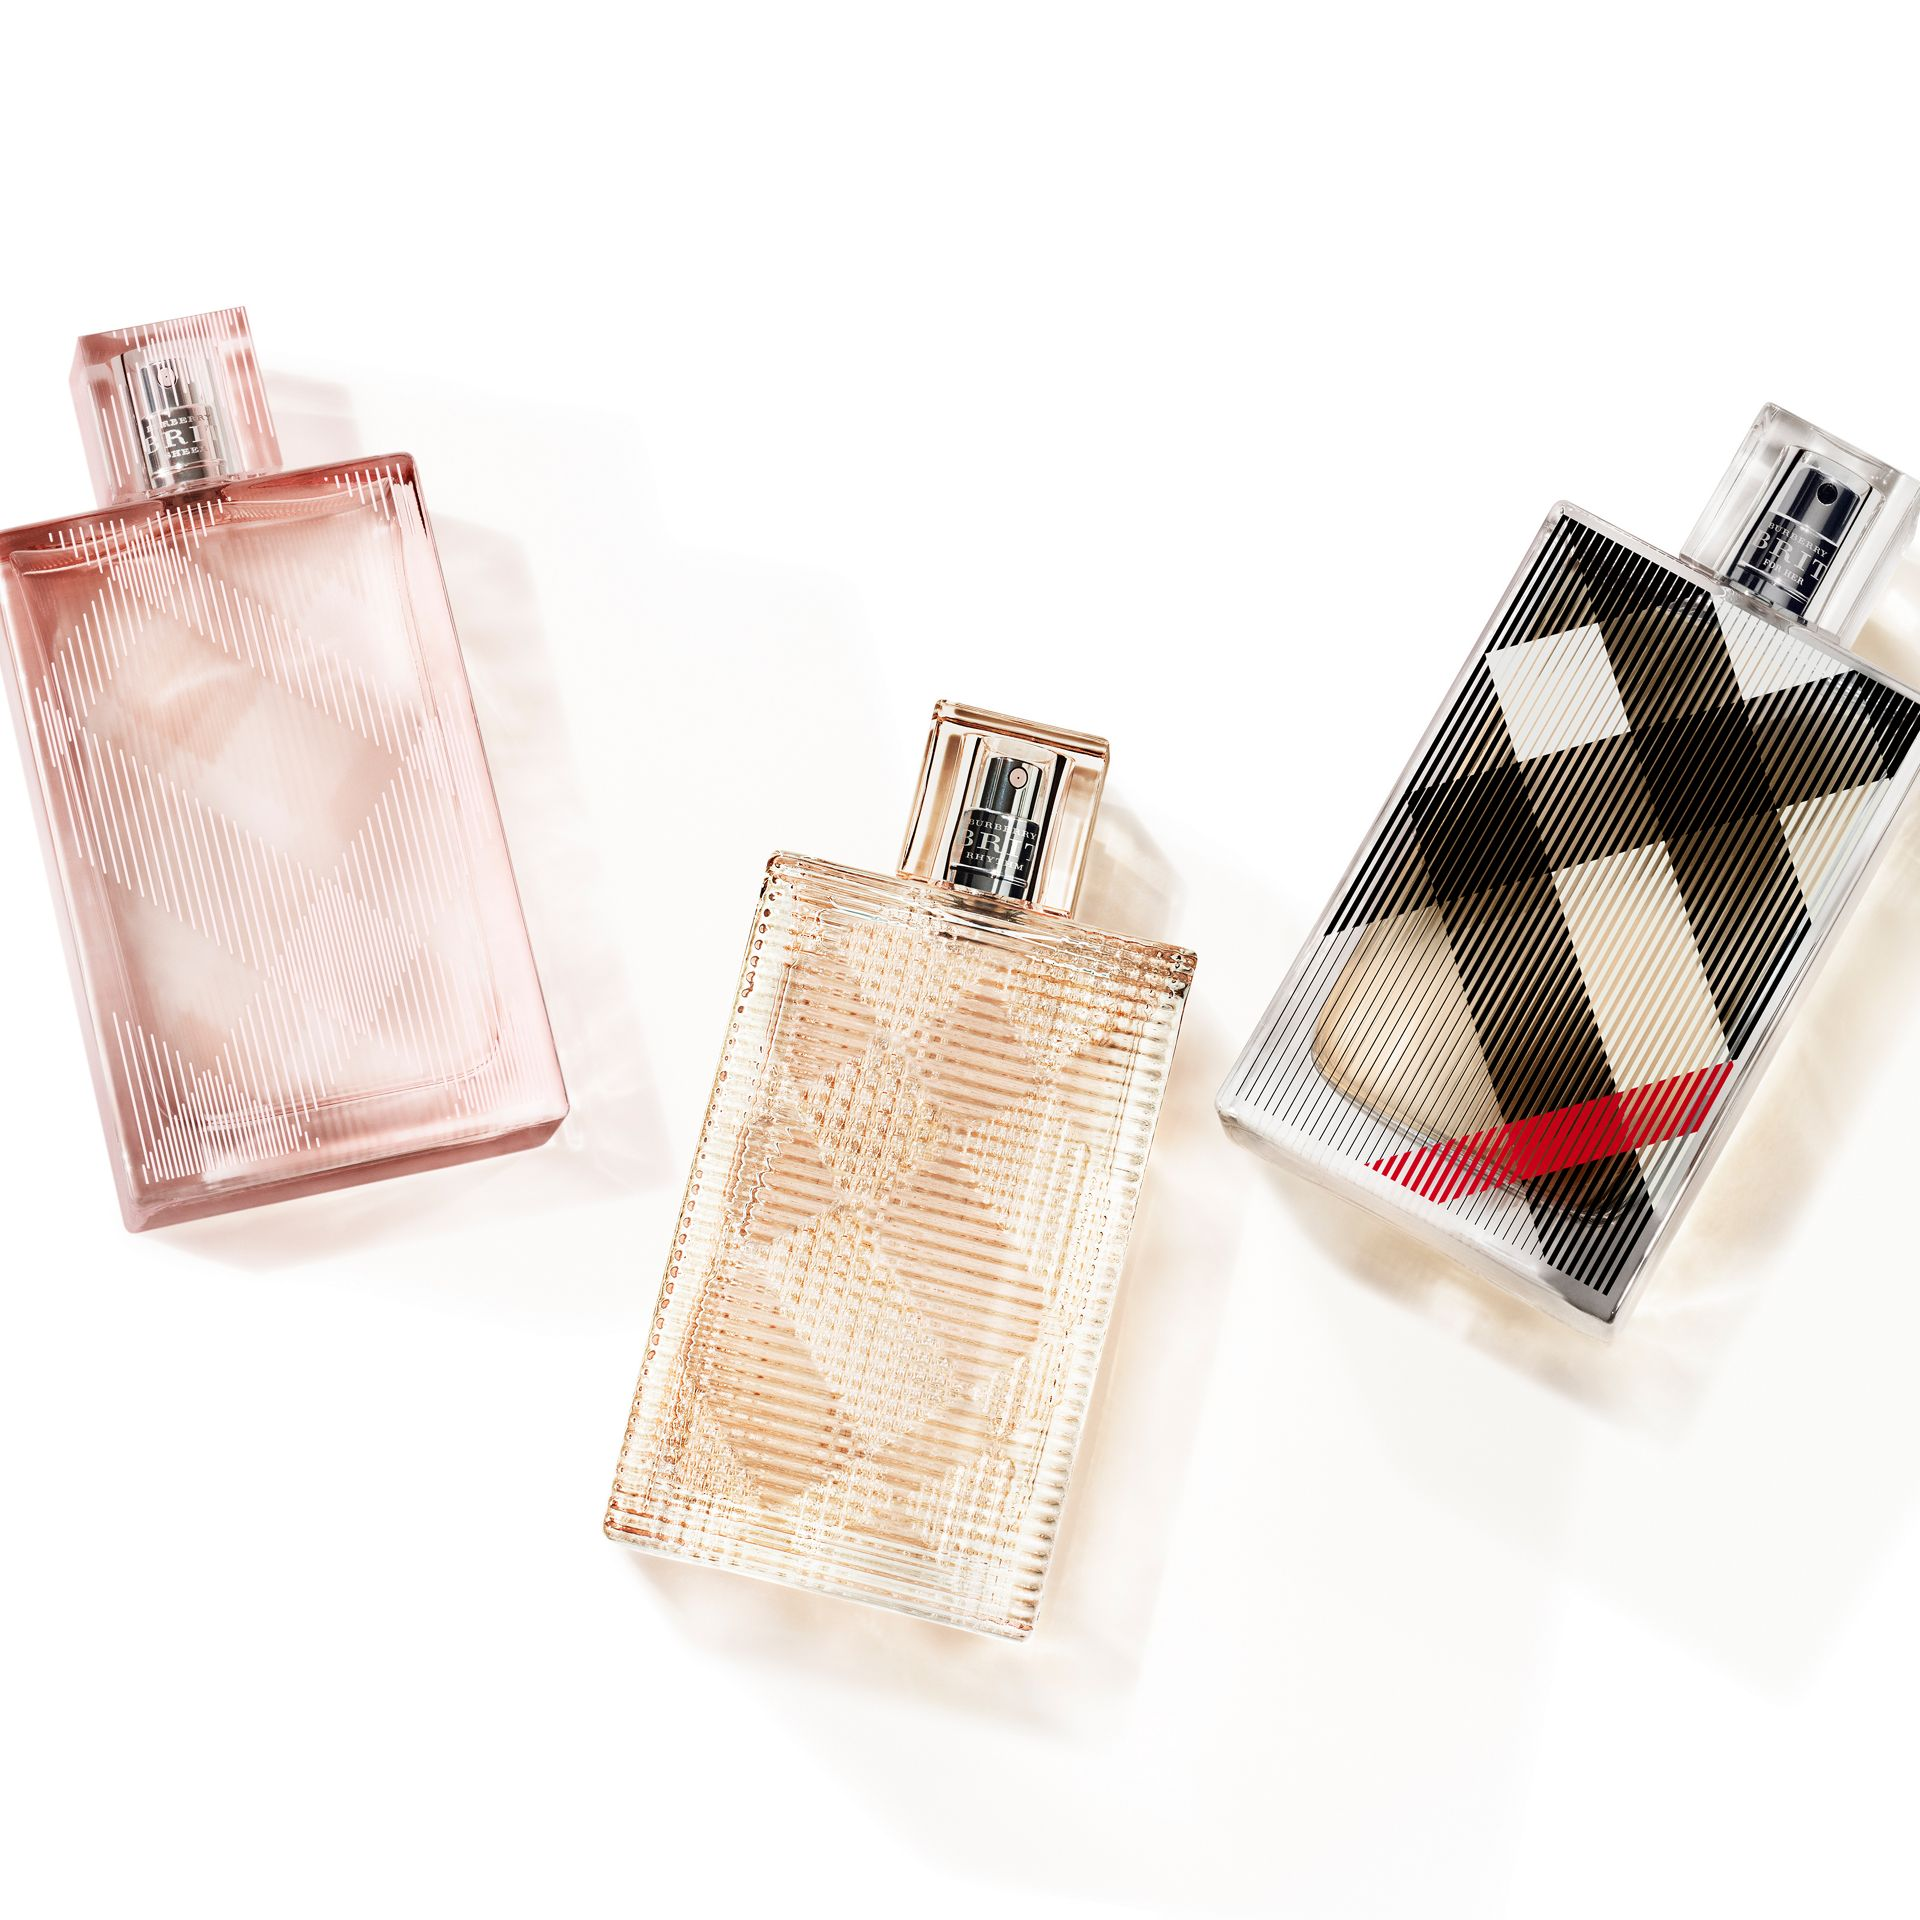 Burberry Brit For Her Eau de Toilette 50 ml - immagine della galleria 3